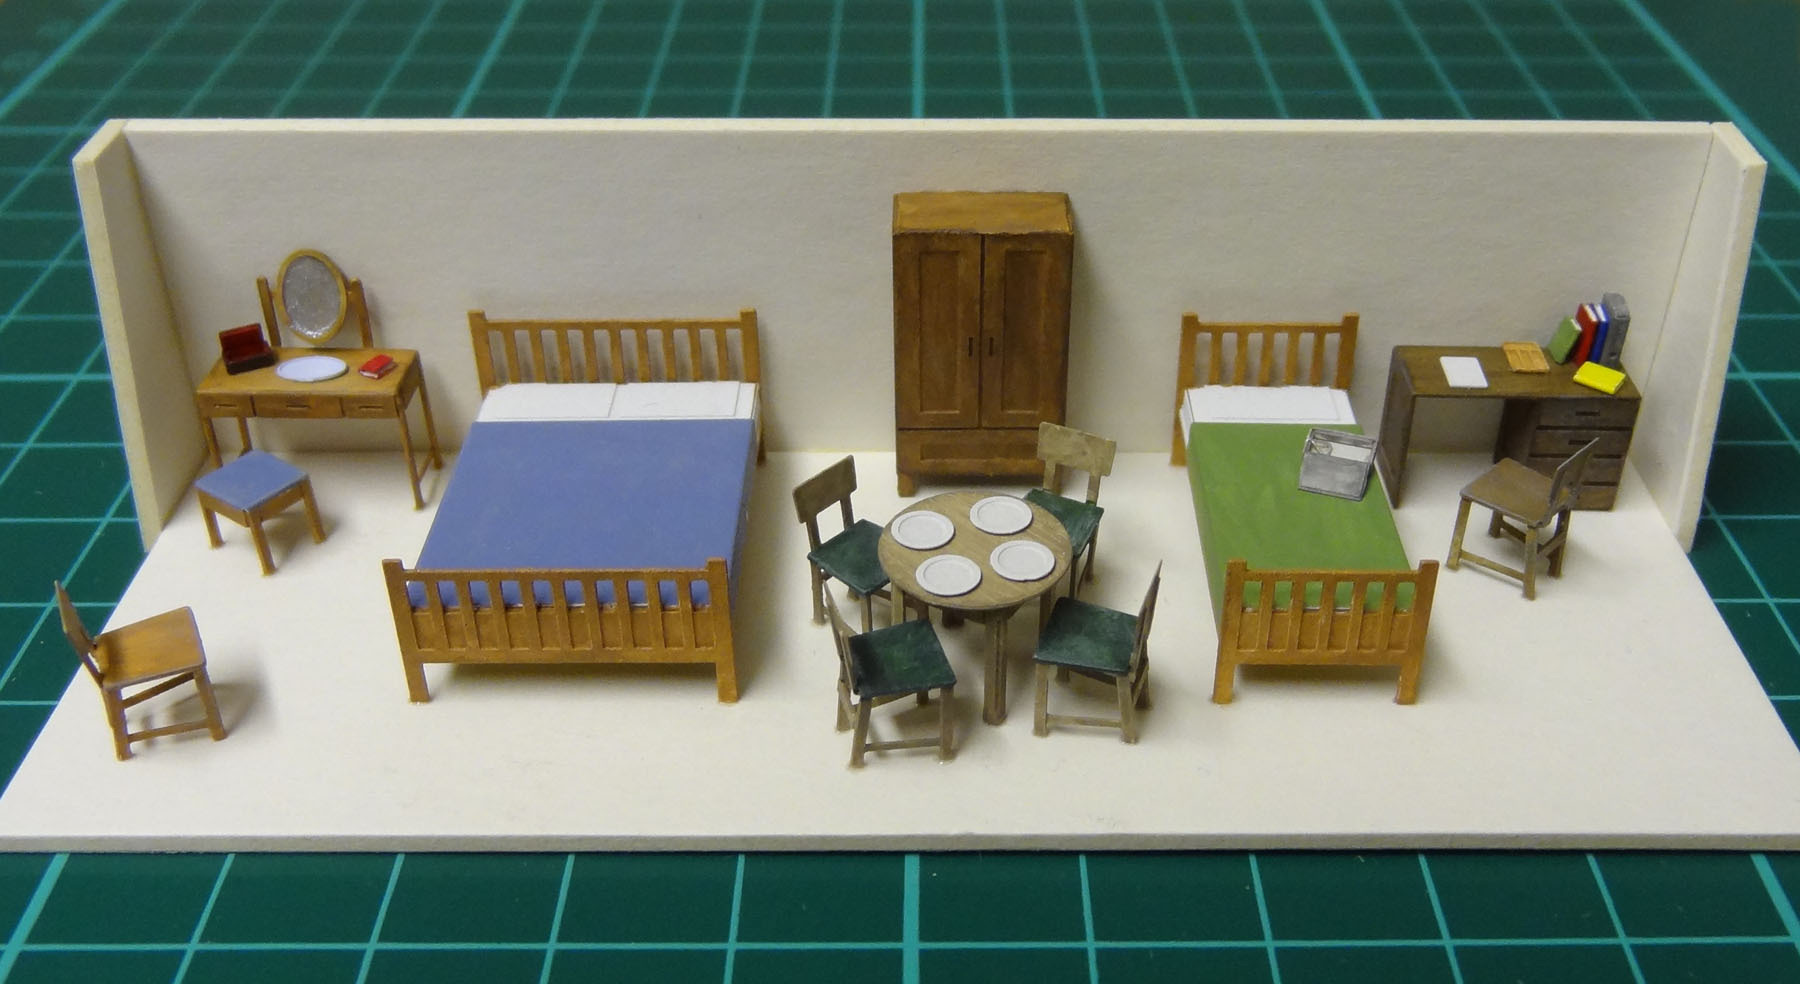 Oo gauge 4mm to 1 foot severn models Scale model furniture